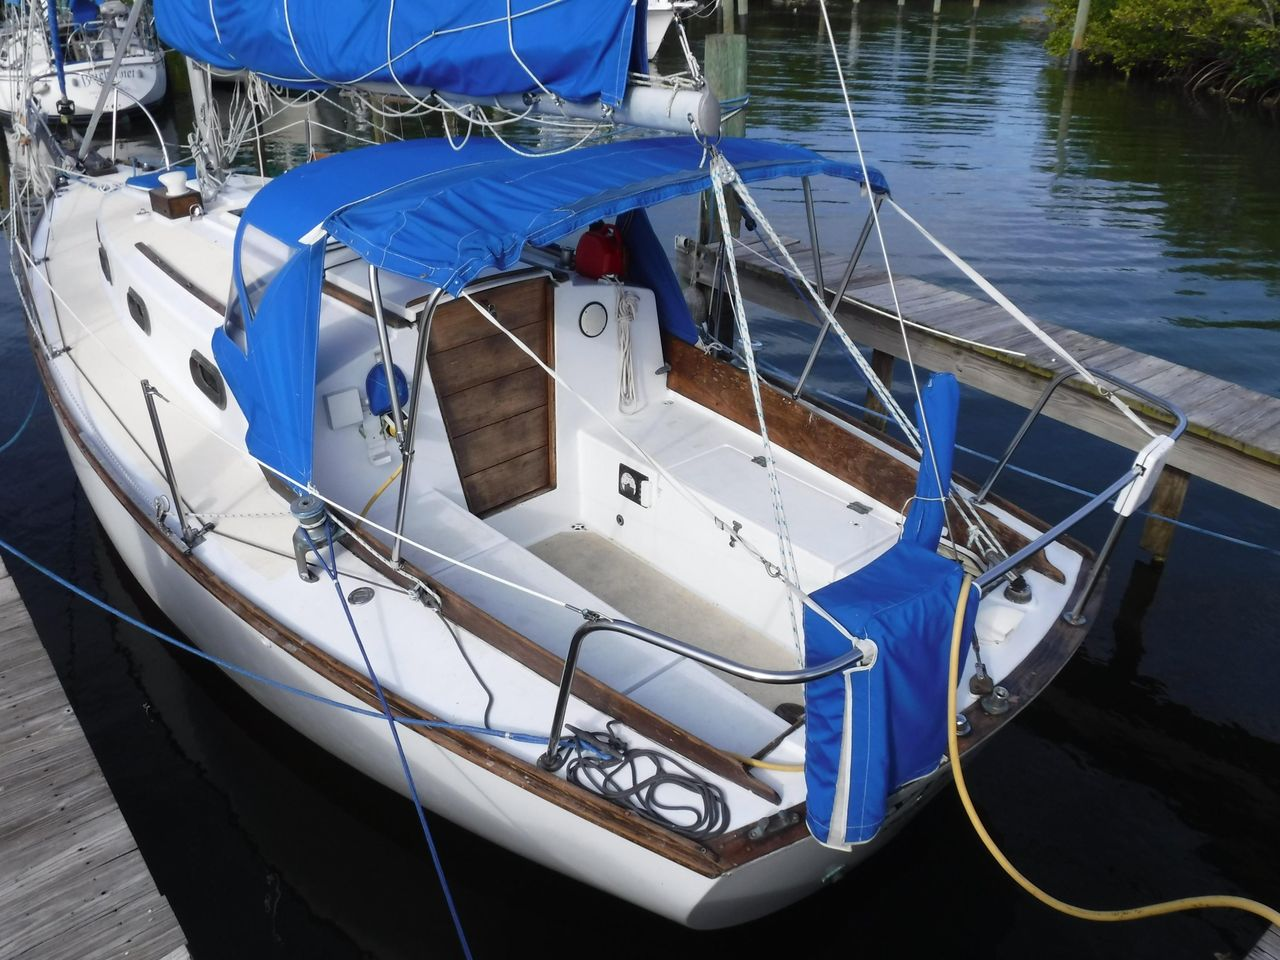 1977 Used Cape Dory 28 Cruiser Sailboat For Sale - $24,500 - Fort